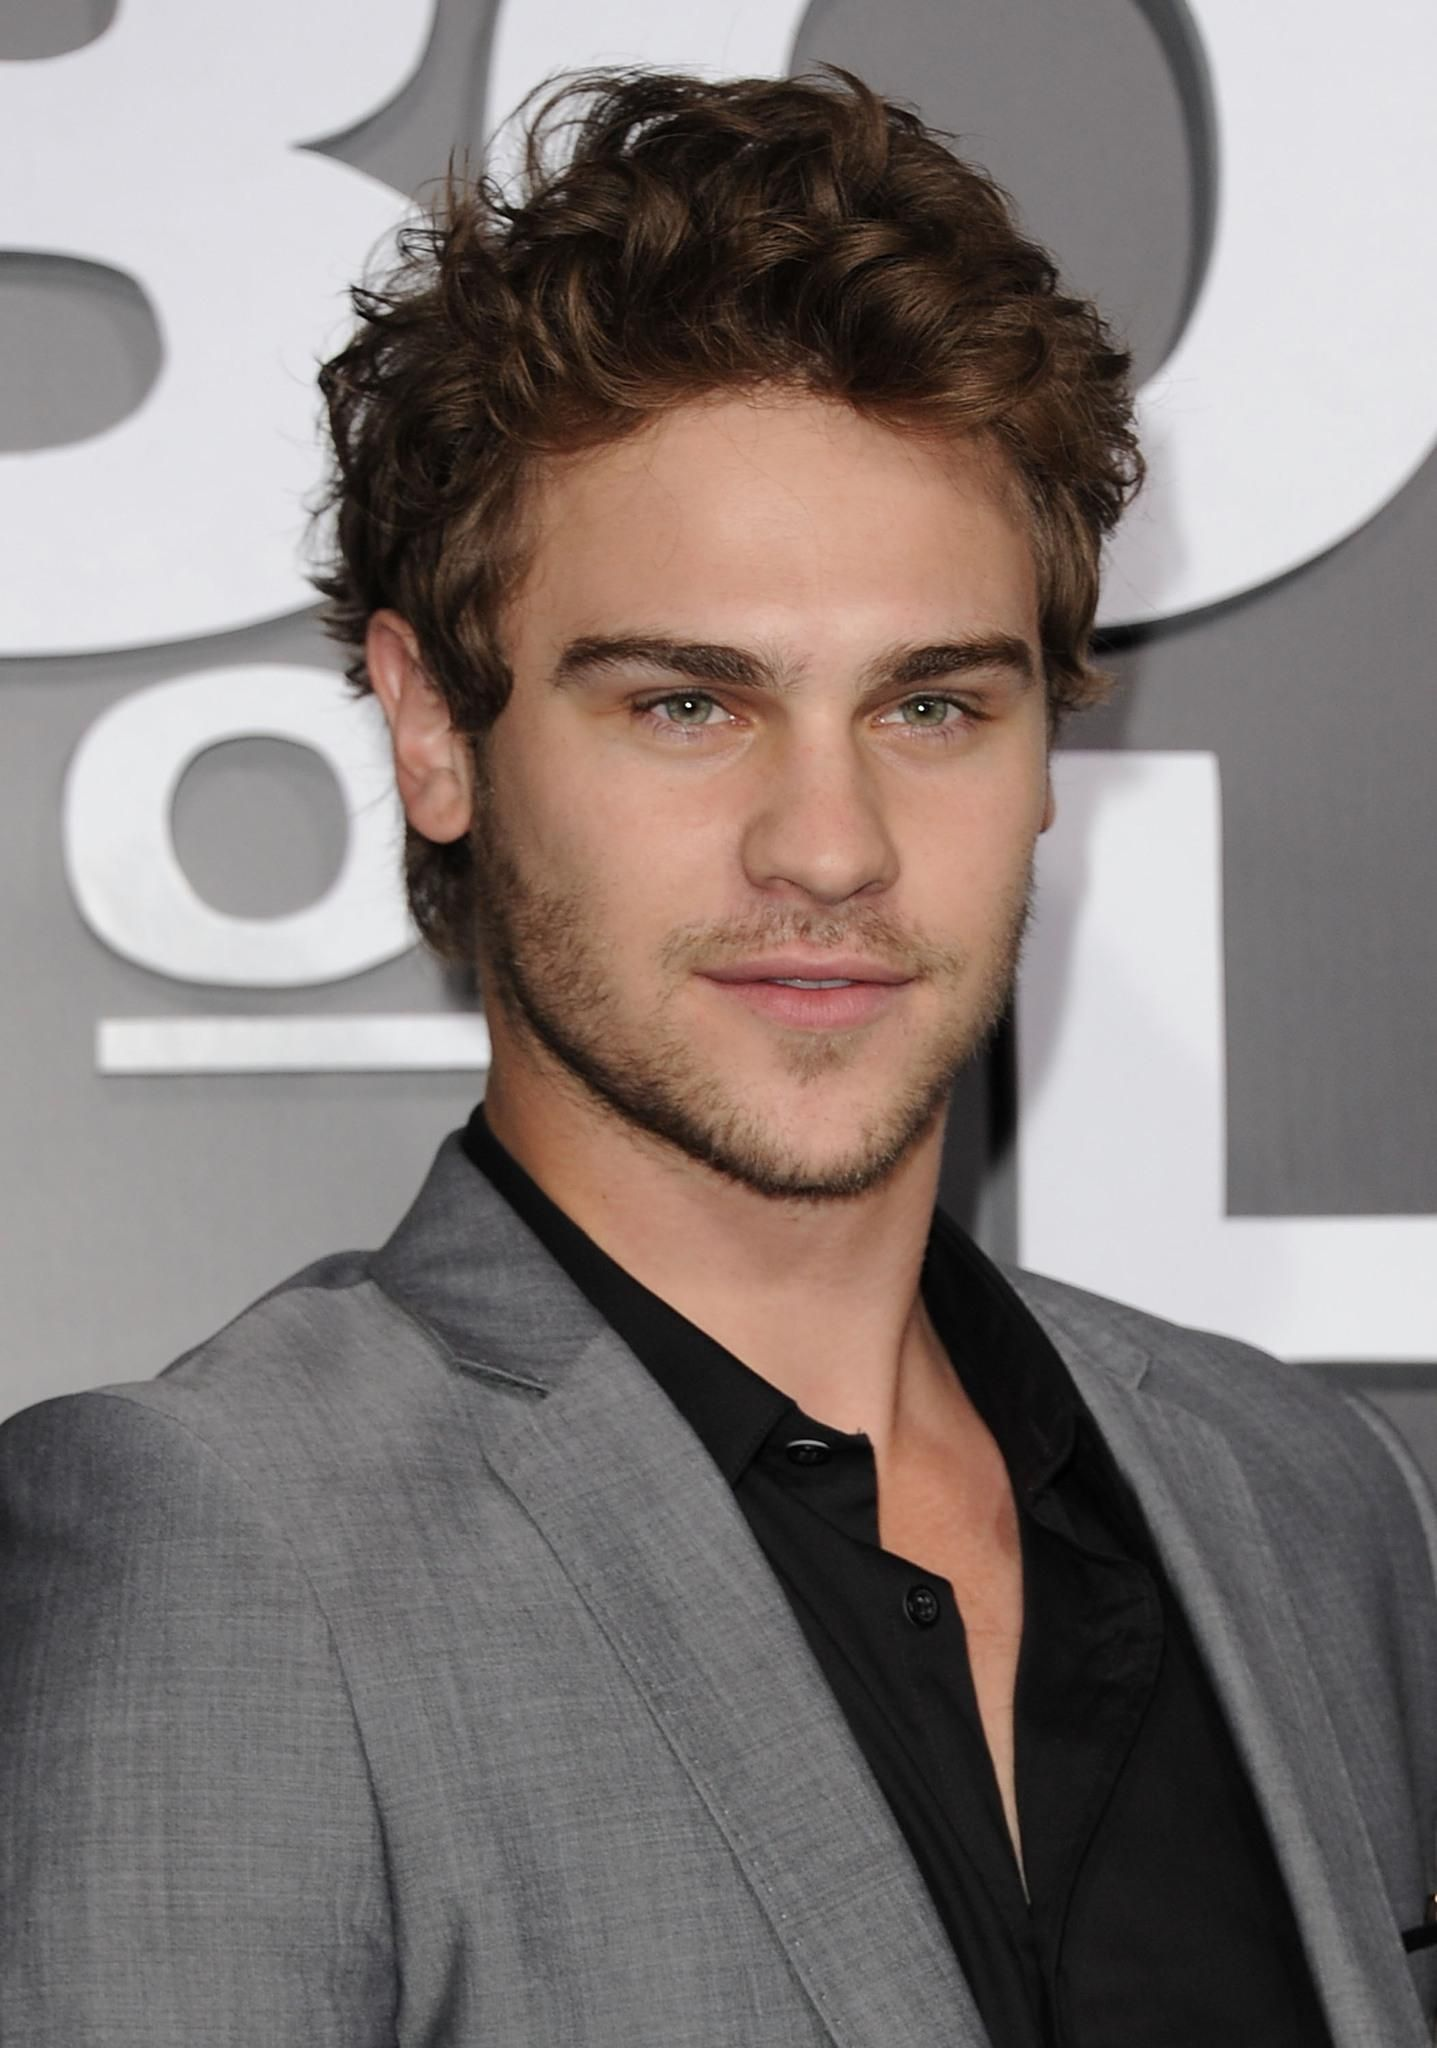 grey damon images | Damon, Celebrity pictures, American actors